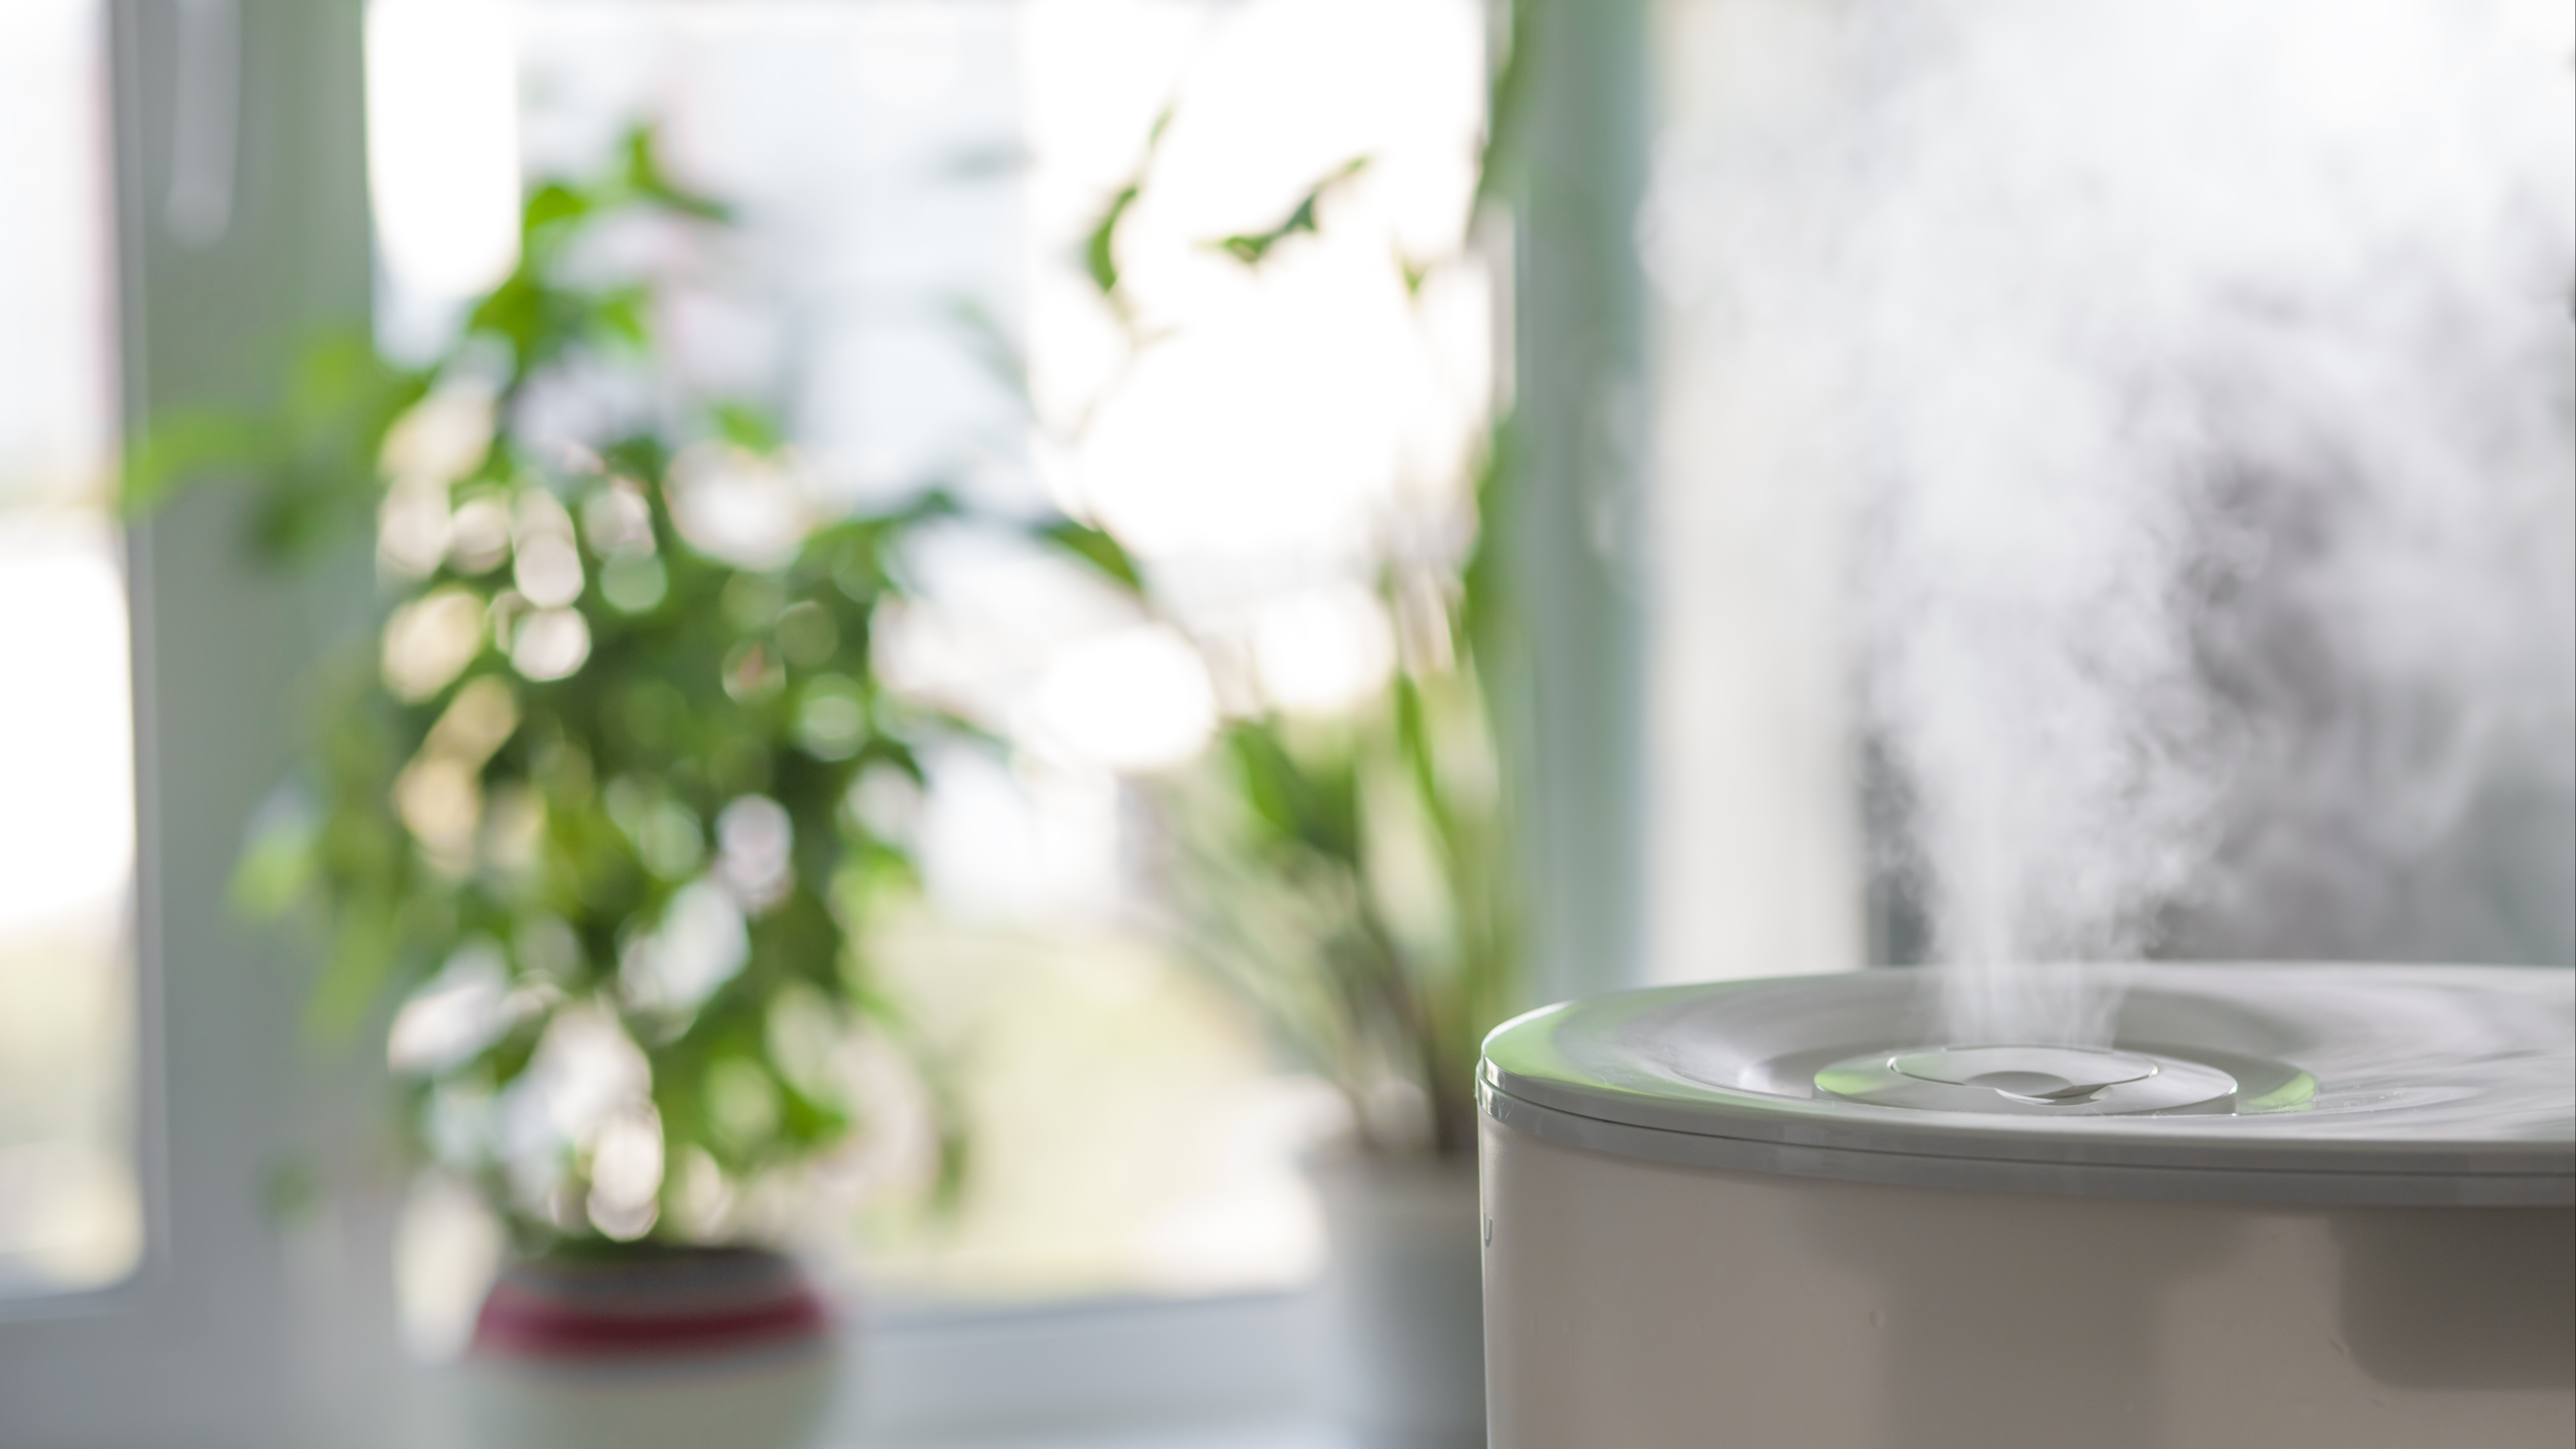 vapor from a humidifier in a bright living room with a window and plants in the background